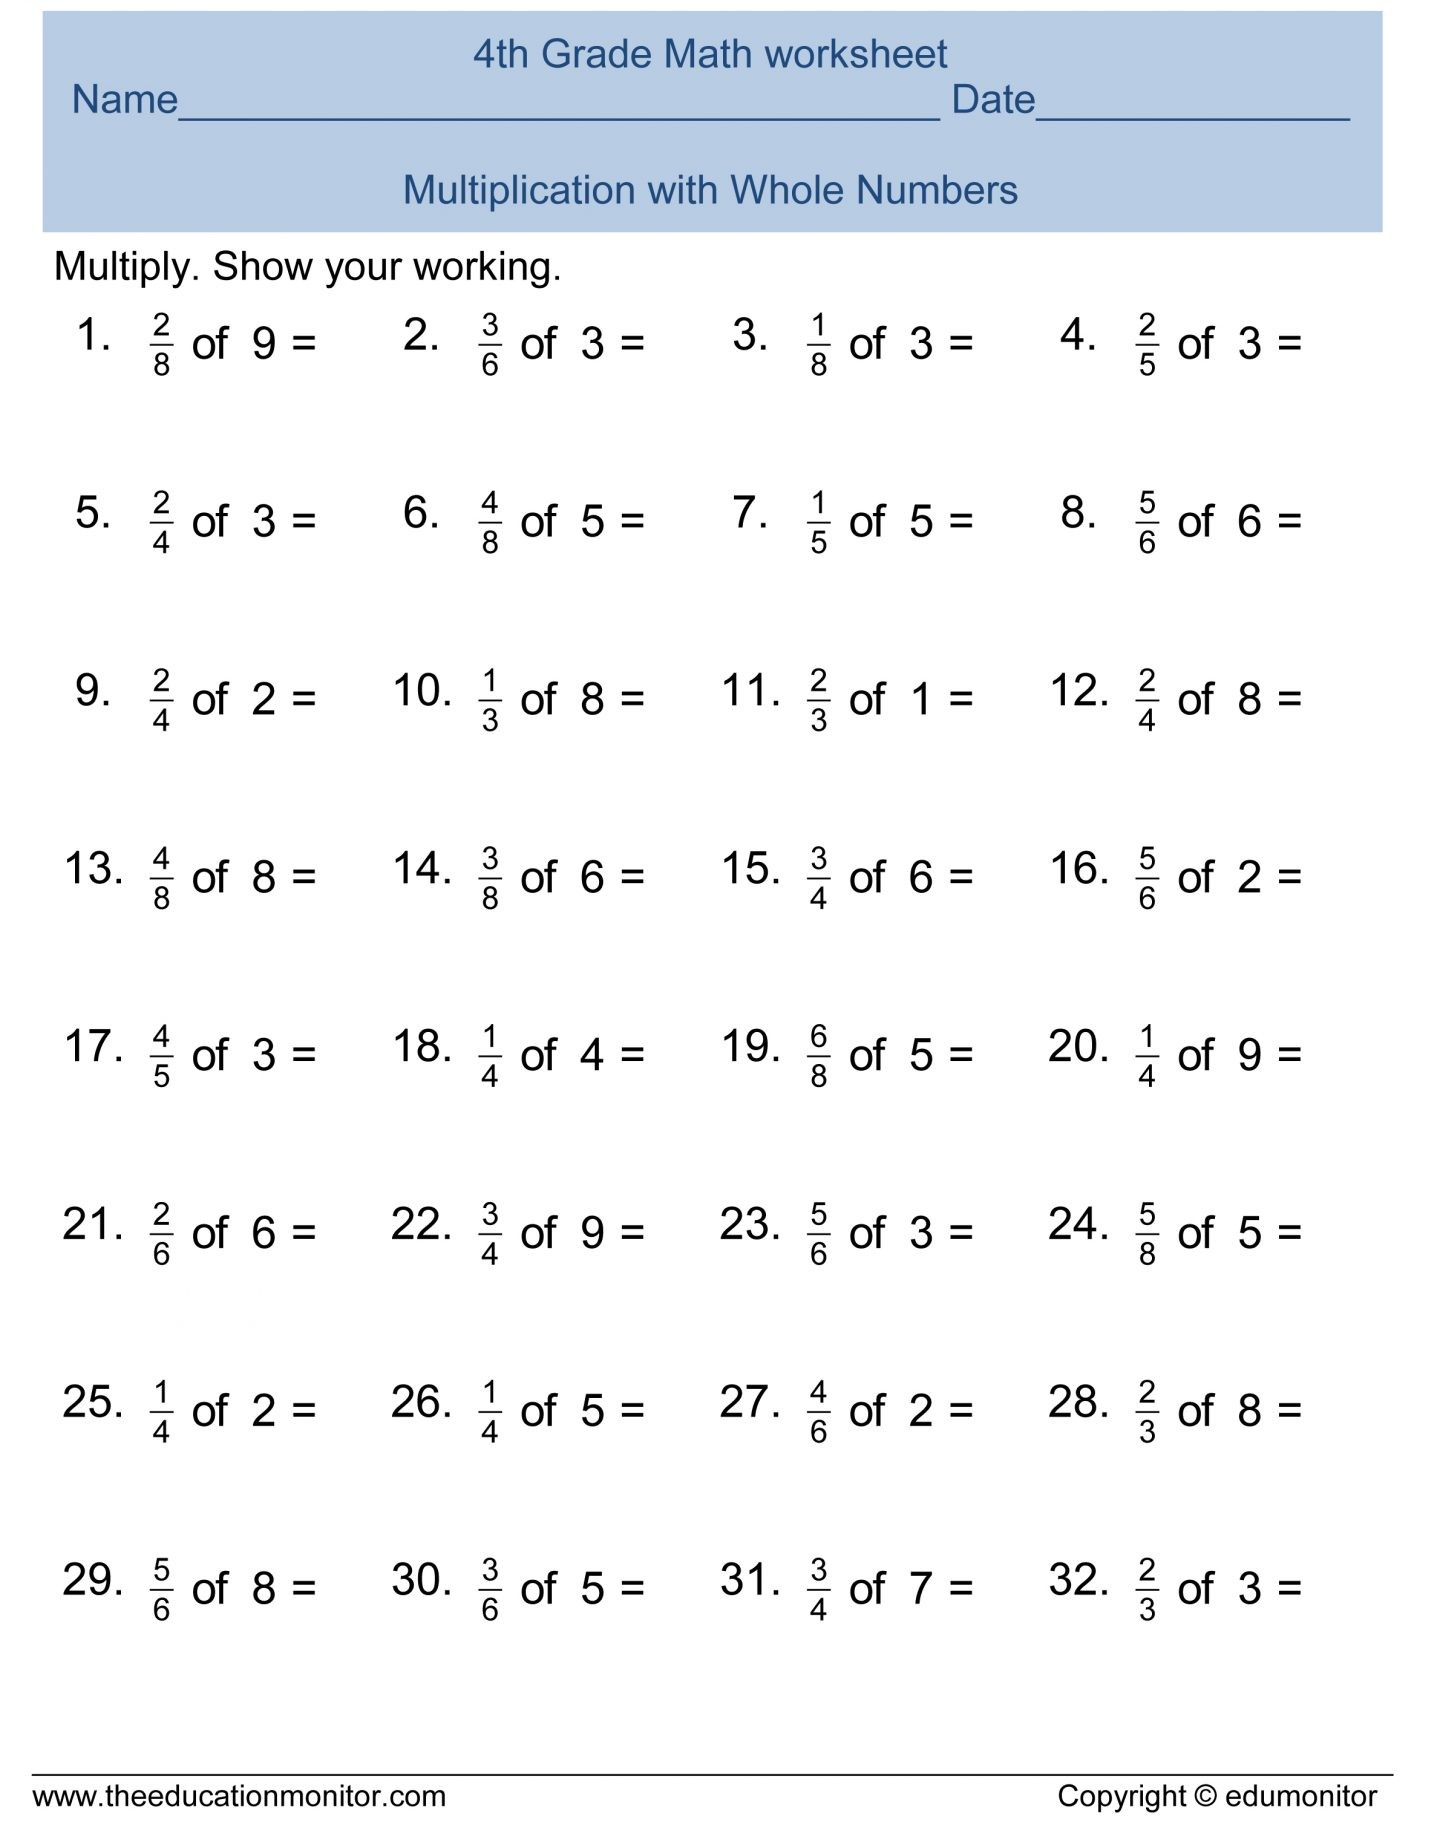 7Th Grade Math Worksheets Free Printable With Answers Stunning - 7Th | 7Th Grade Math Printable Worksheets With Answers